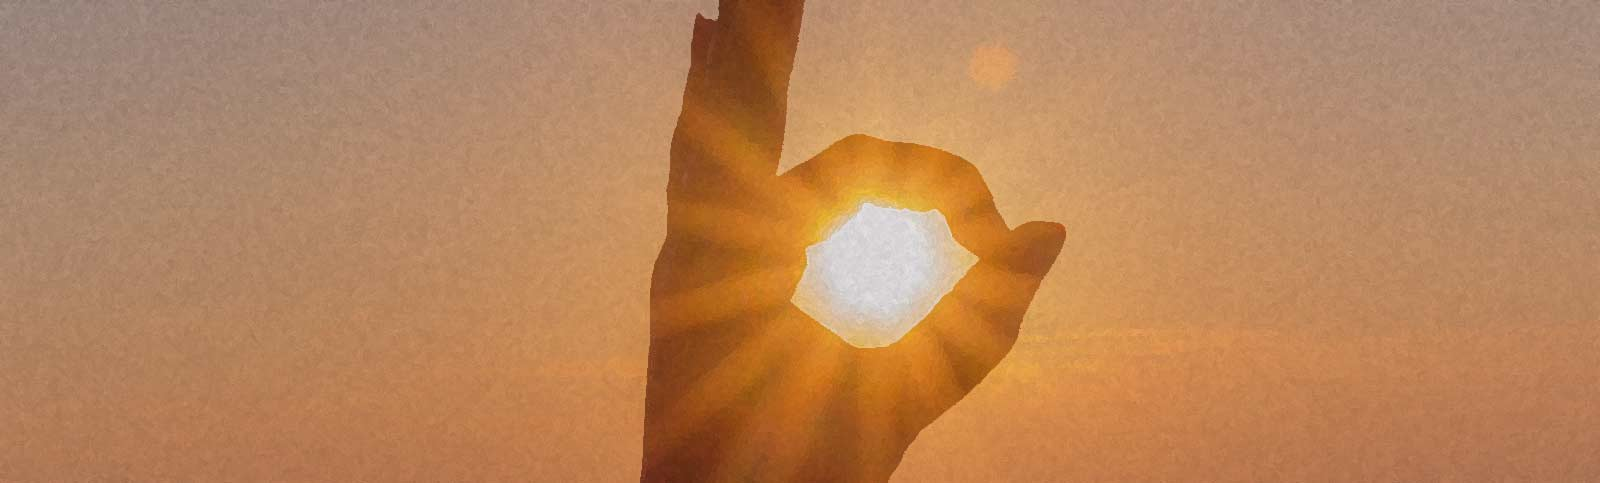 Why Is Vitamin D Deficiency So Prevalent?